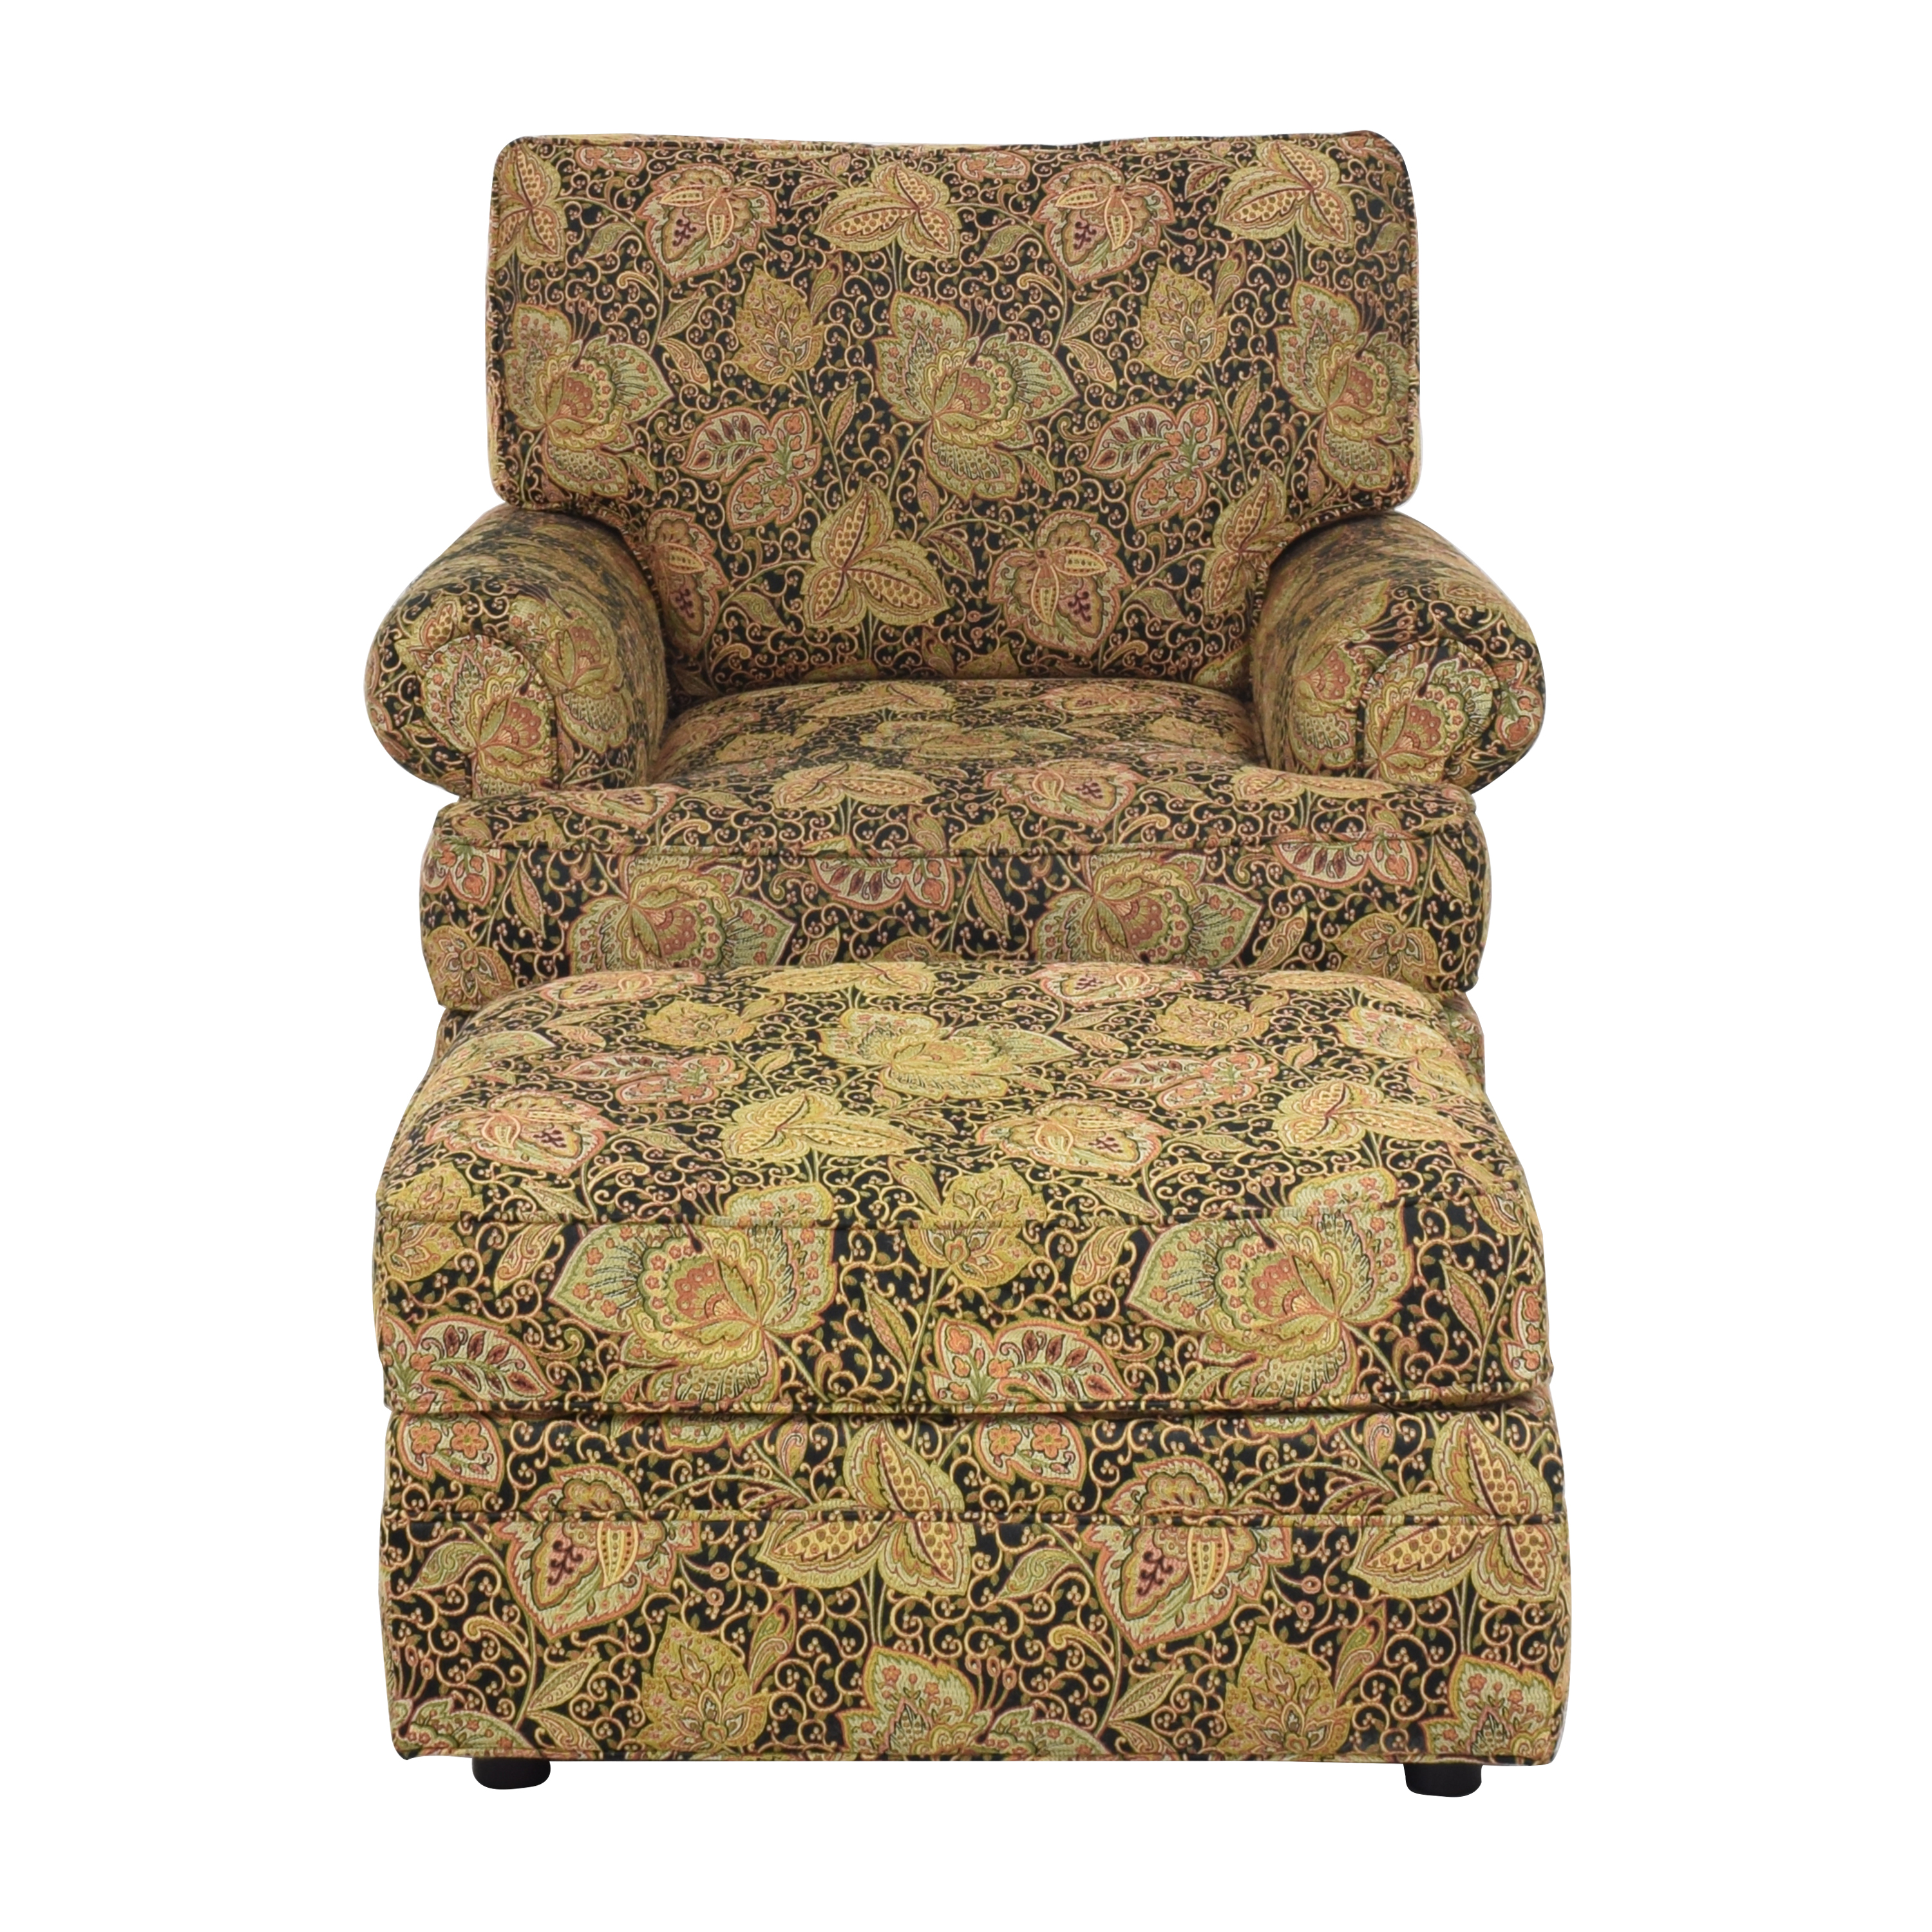 buy Thomasville Swivel Club Chair with Ottoman Thomasville Accent Chairs